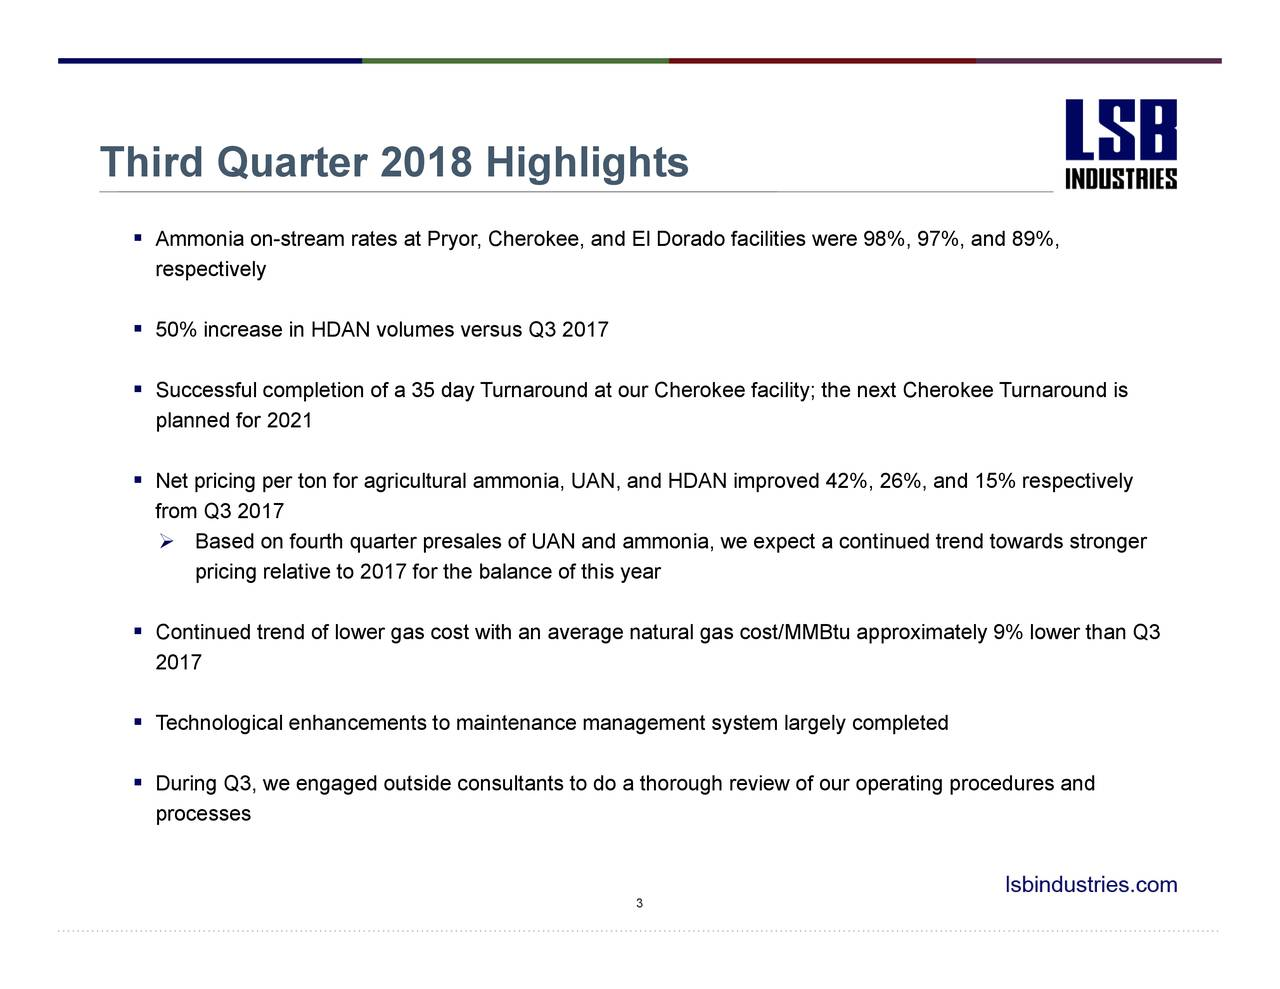 gely completed ities were 98%, 97%, androved 42%, 26%, and 15% respeew of our operating procedures and ost/MMBtu approximately 9% lower than Q3 3 t with an average natural gas c r the balance of this year Baspeicngfrelrivqtart0r7rfsales of UAN and ammonia, we expect Amresonictn-ltecrccessfultPmyiloiumerfCne,uiuQEctnt1adlffraln3s,UcormgaetftDoAsiitpnancelan        Third Quarter 2018 Highlights